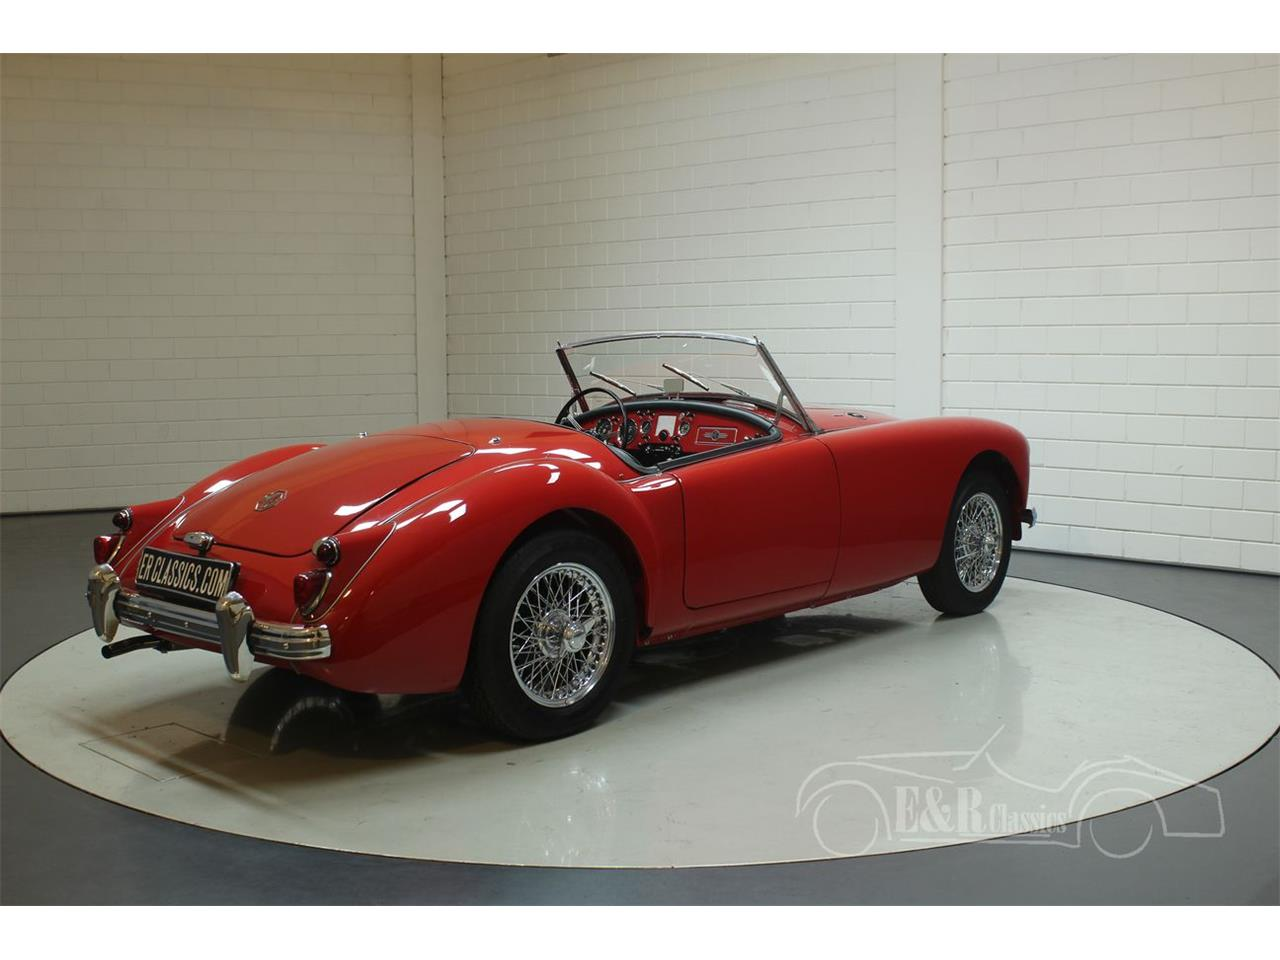 Large Picture of '59 MG MGA - $56,500.00 Offered by E & R Classics - PGST